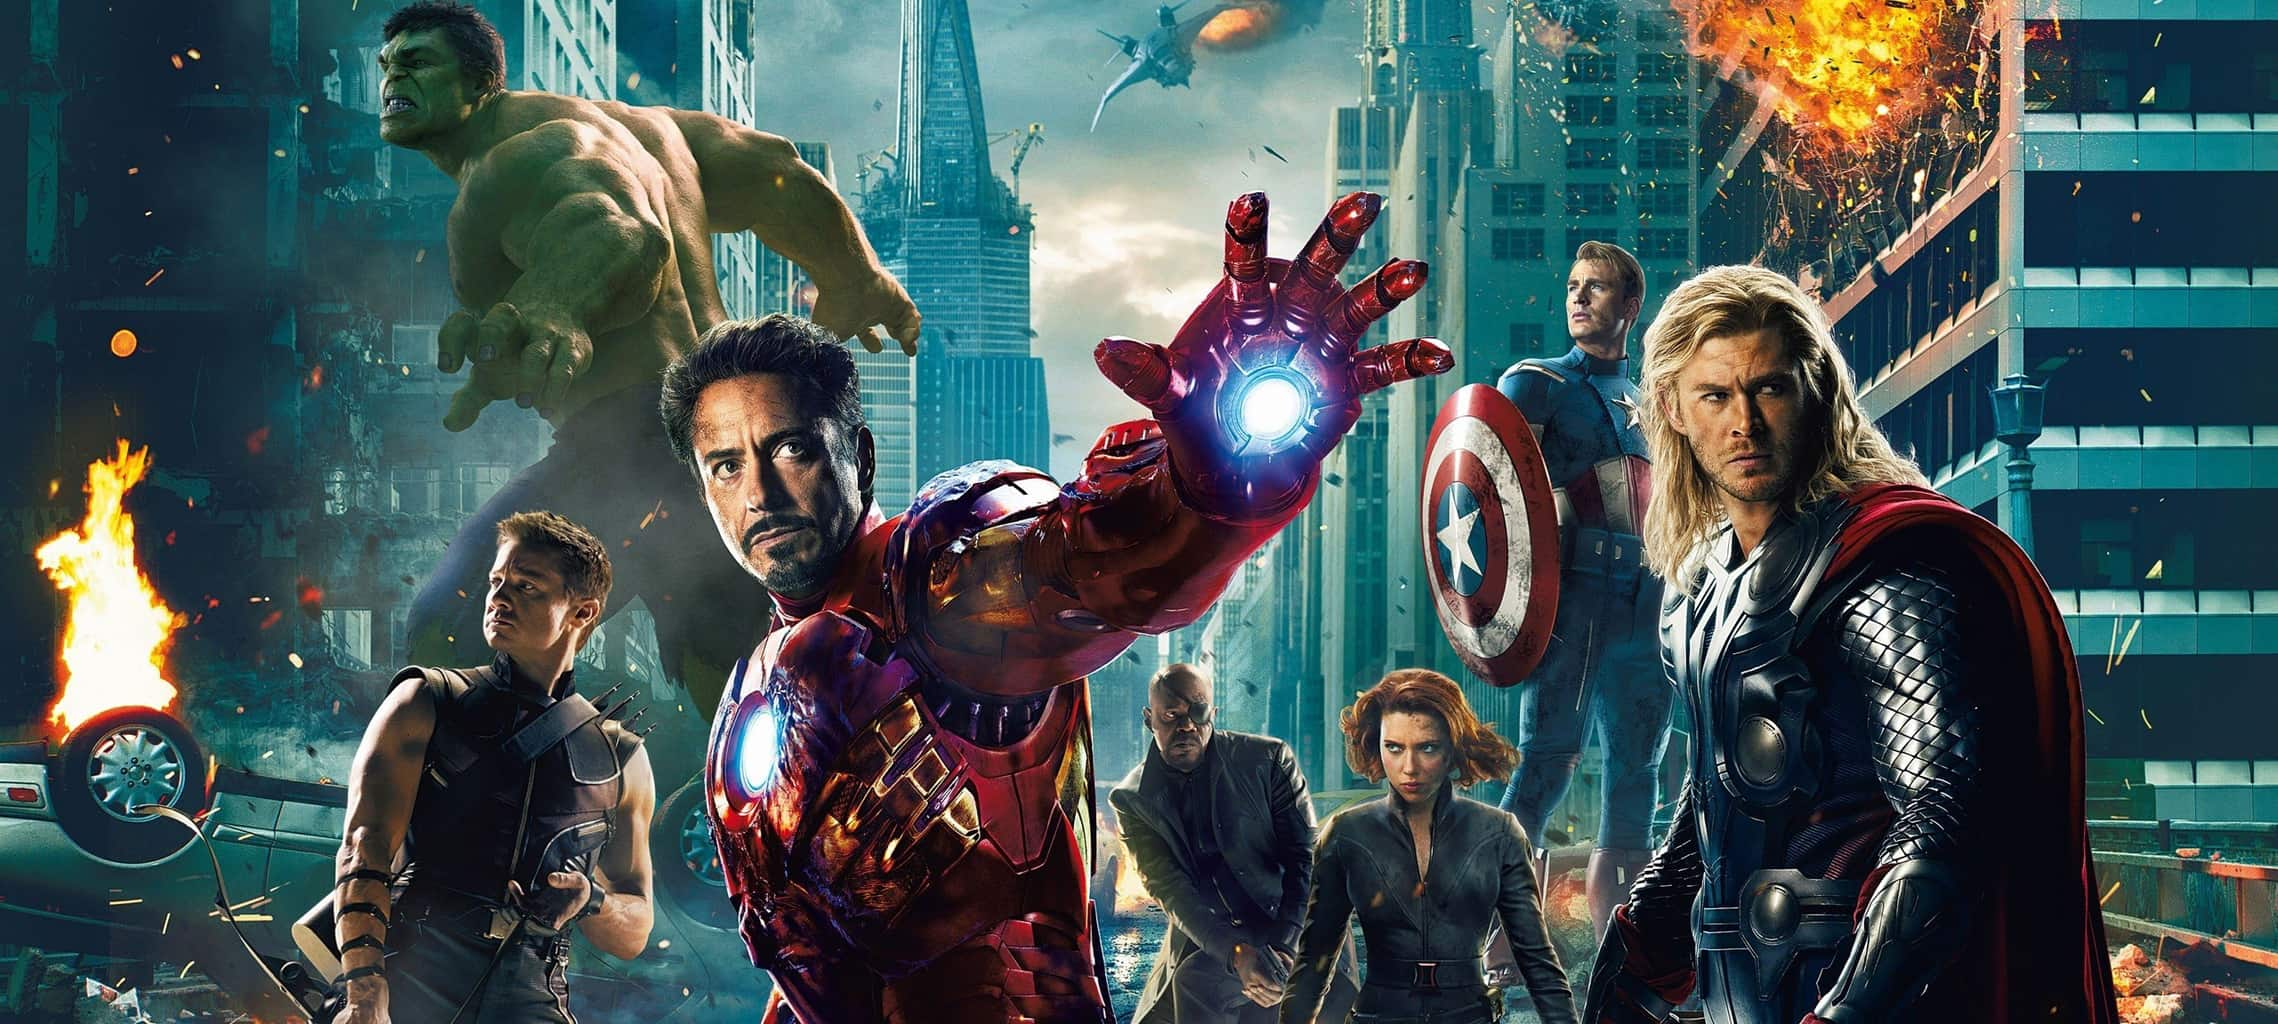 film reviews | movies | features | BRWC The Avengers - Review